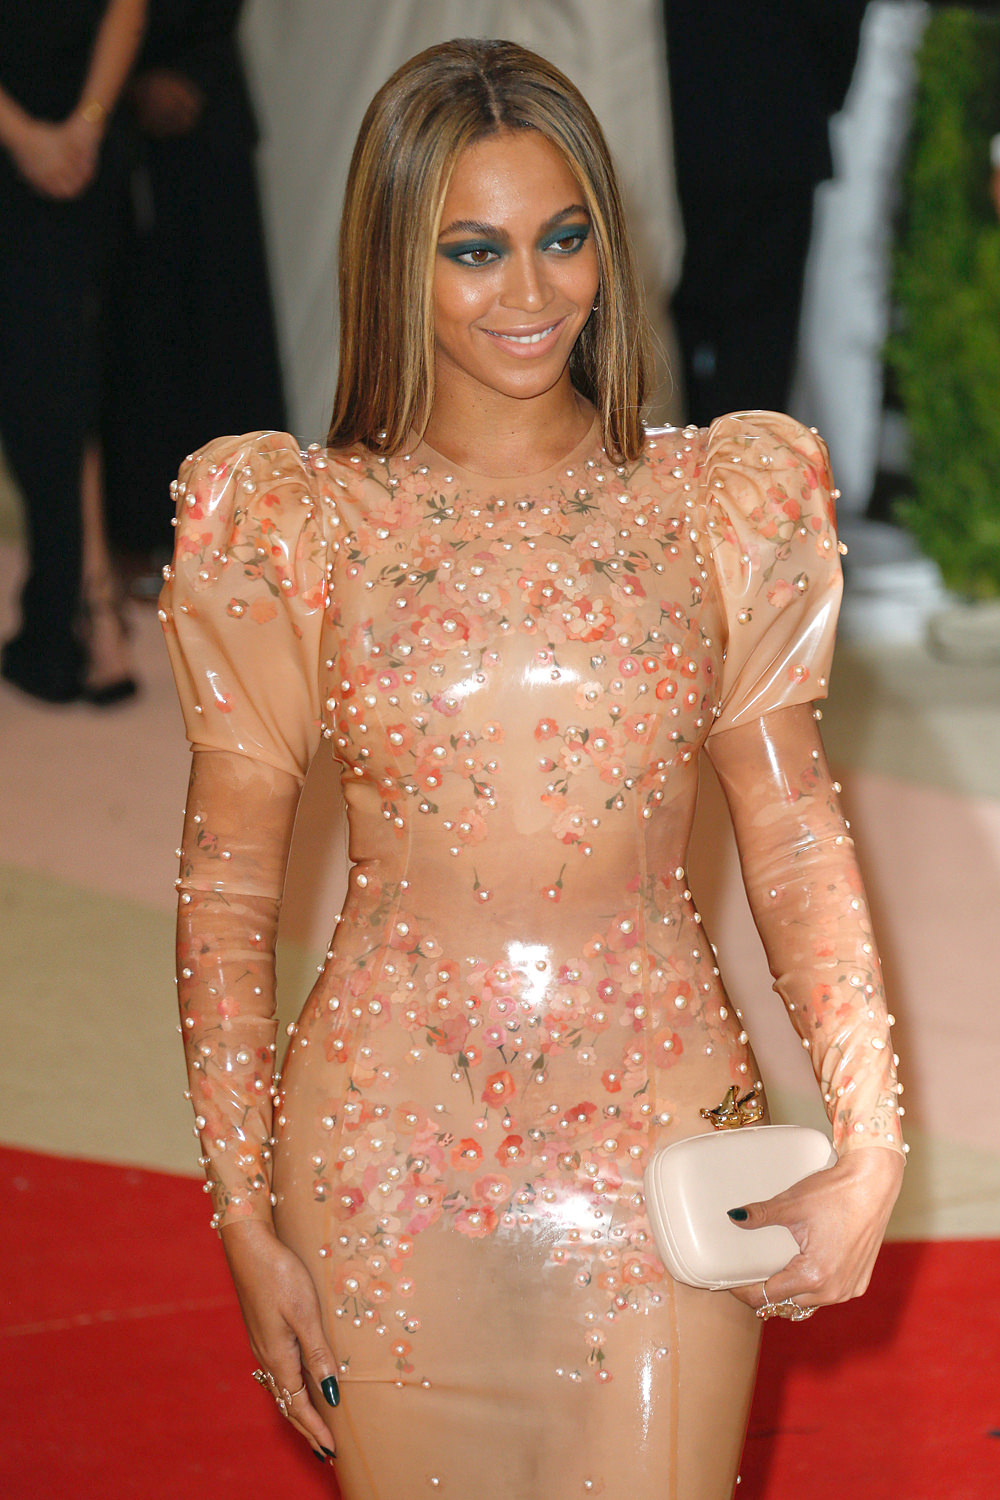 Beyonce-Met-Gala-2016-Red-Carpet-Fashion-Givenchy-Couture-Tom-Lorenzo-Site-1